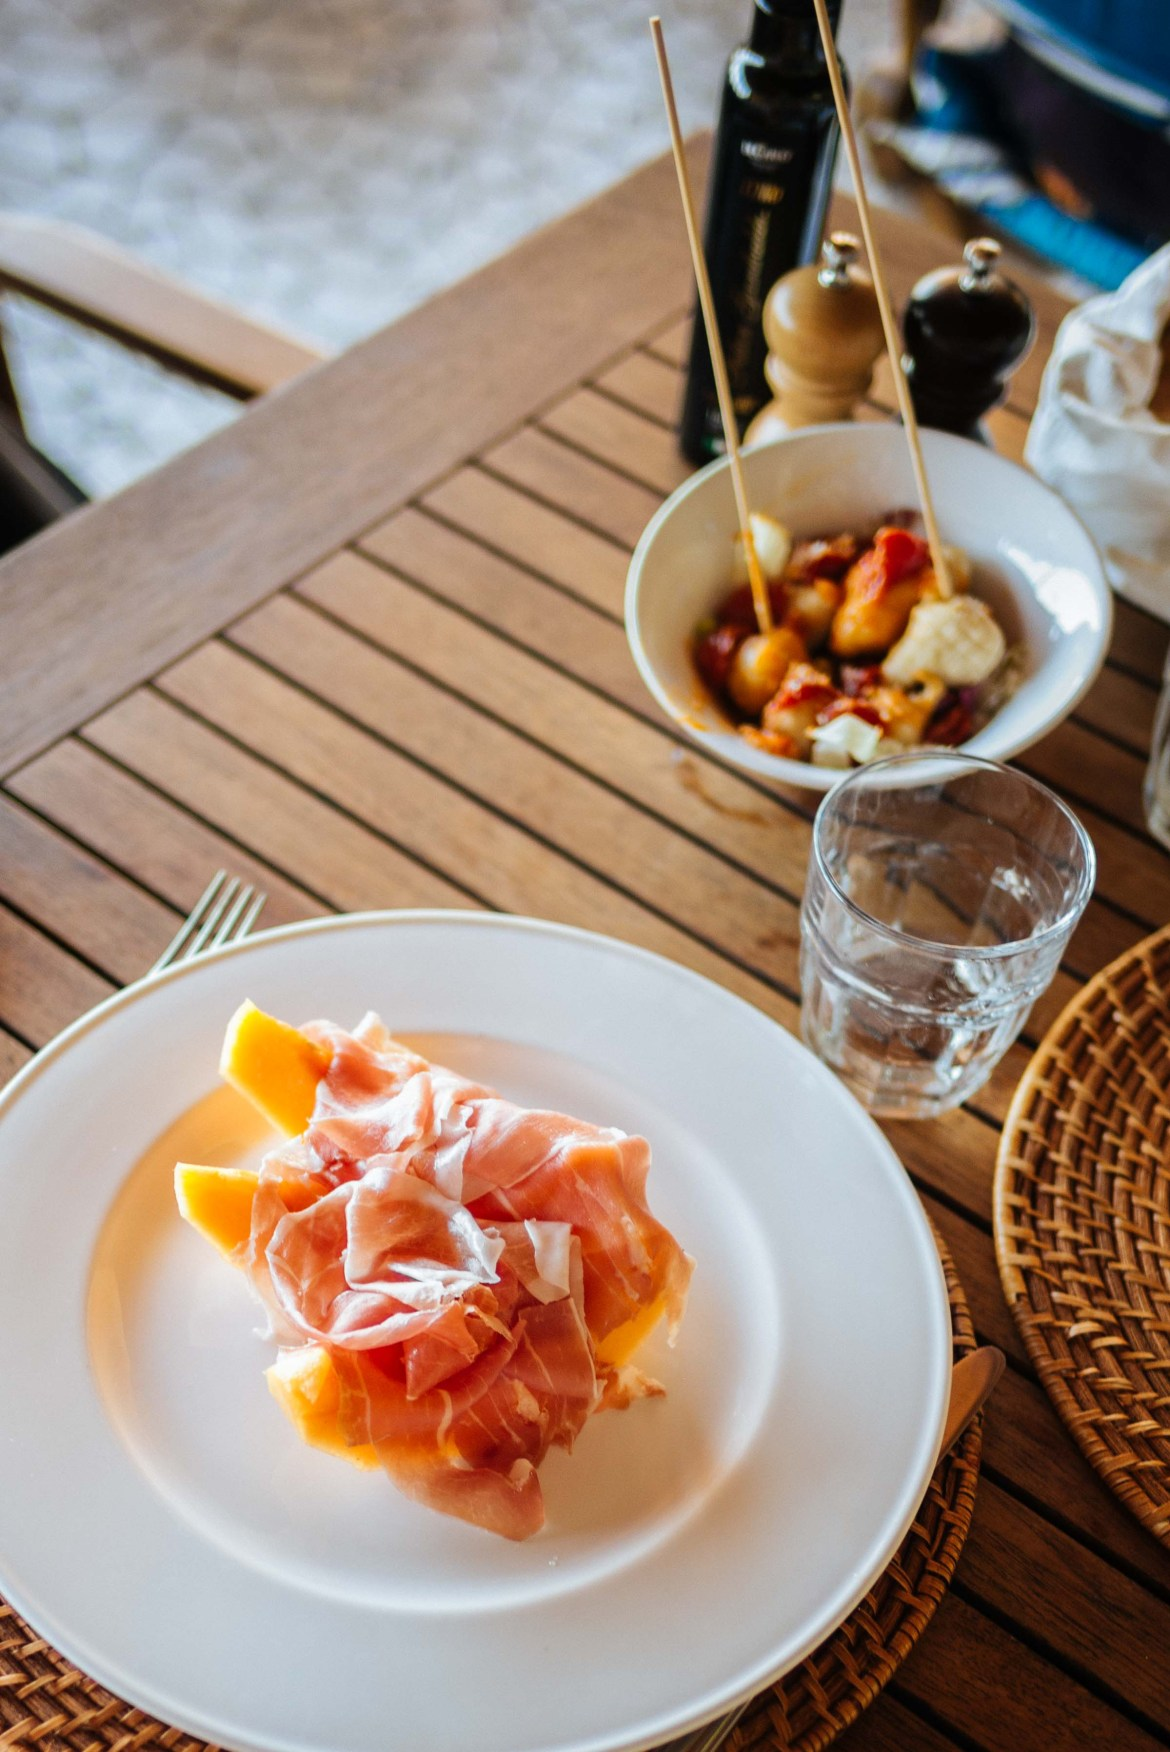 The Taste Edit, Sarah Stanfield orders refreshing melon and prosciutto at lunch time by the pool at Mezzatorre's La Baia restaurant